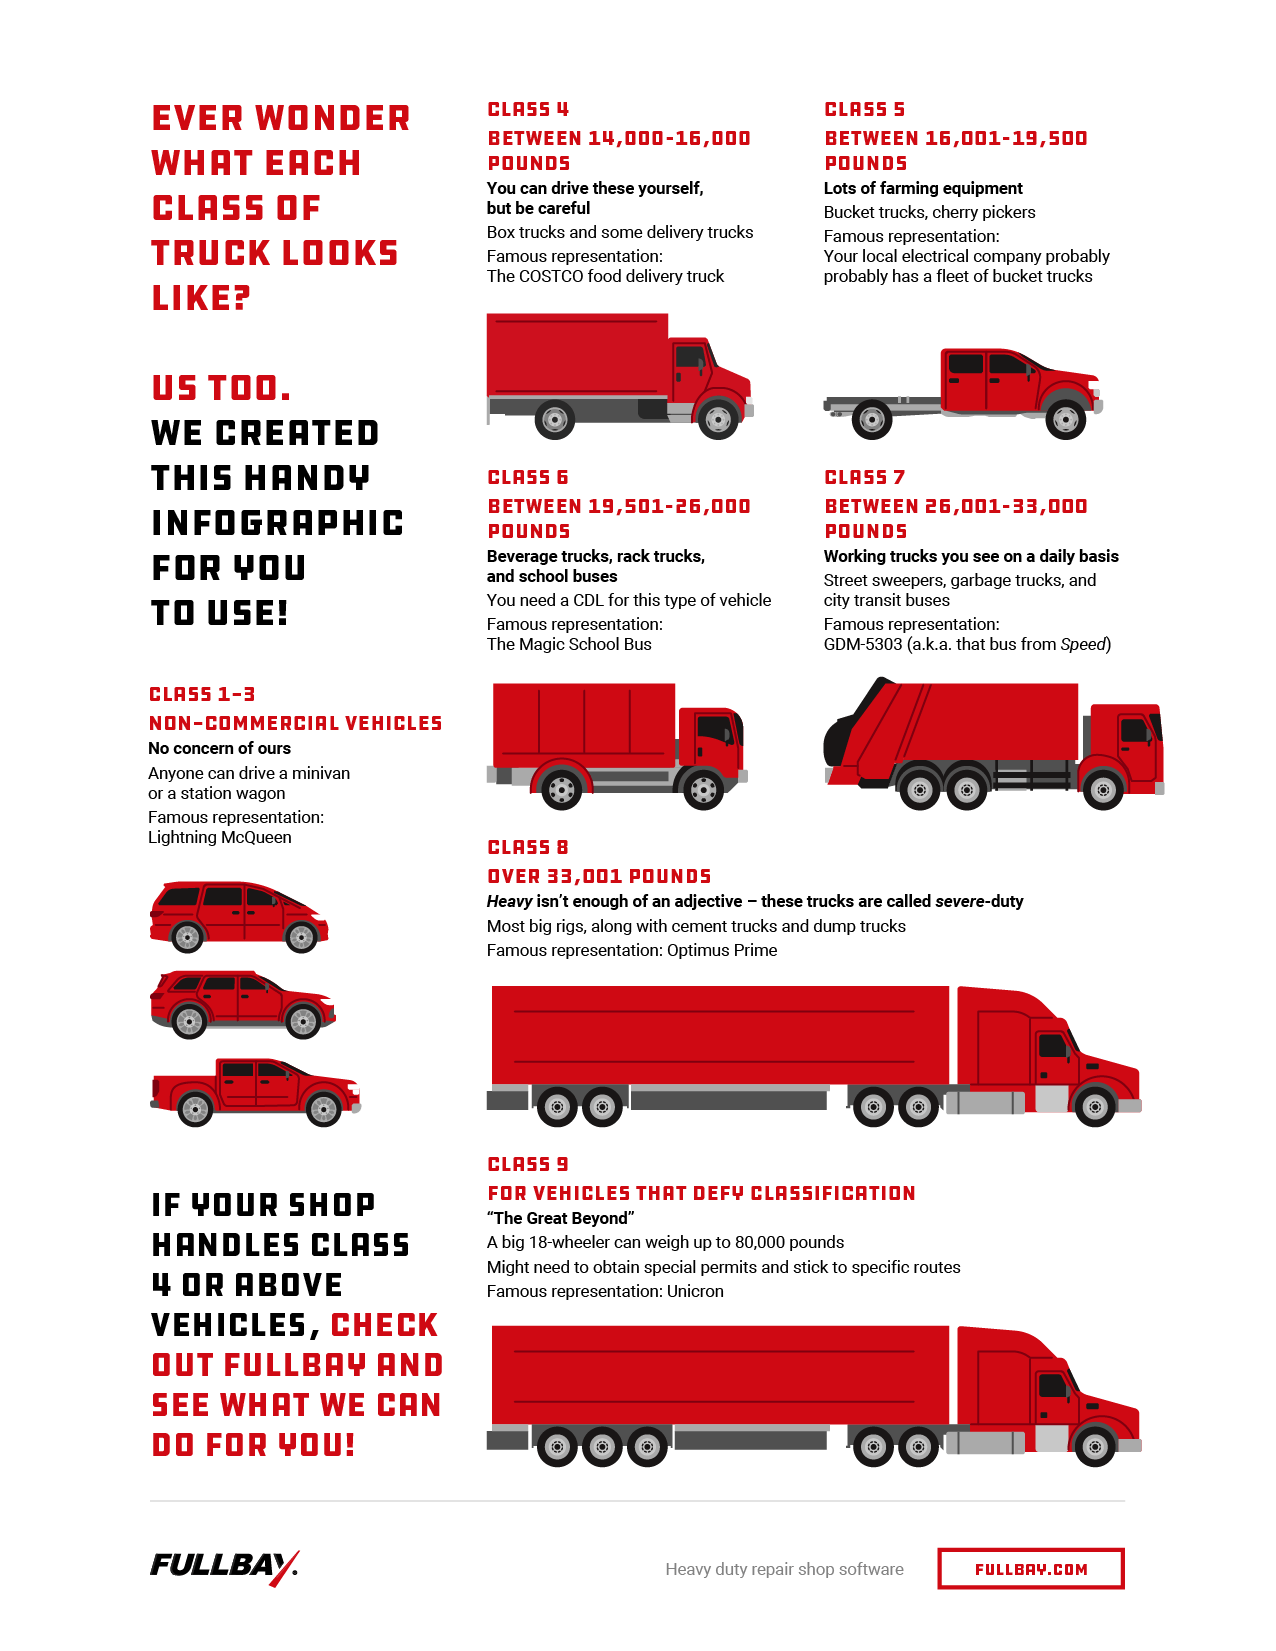 Essential Guide To Truck Classification Classes 1 Through 9